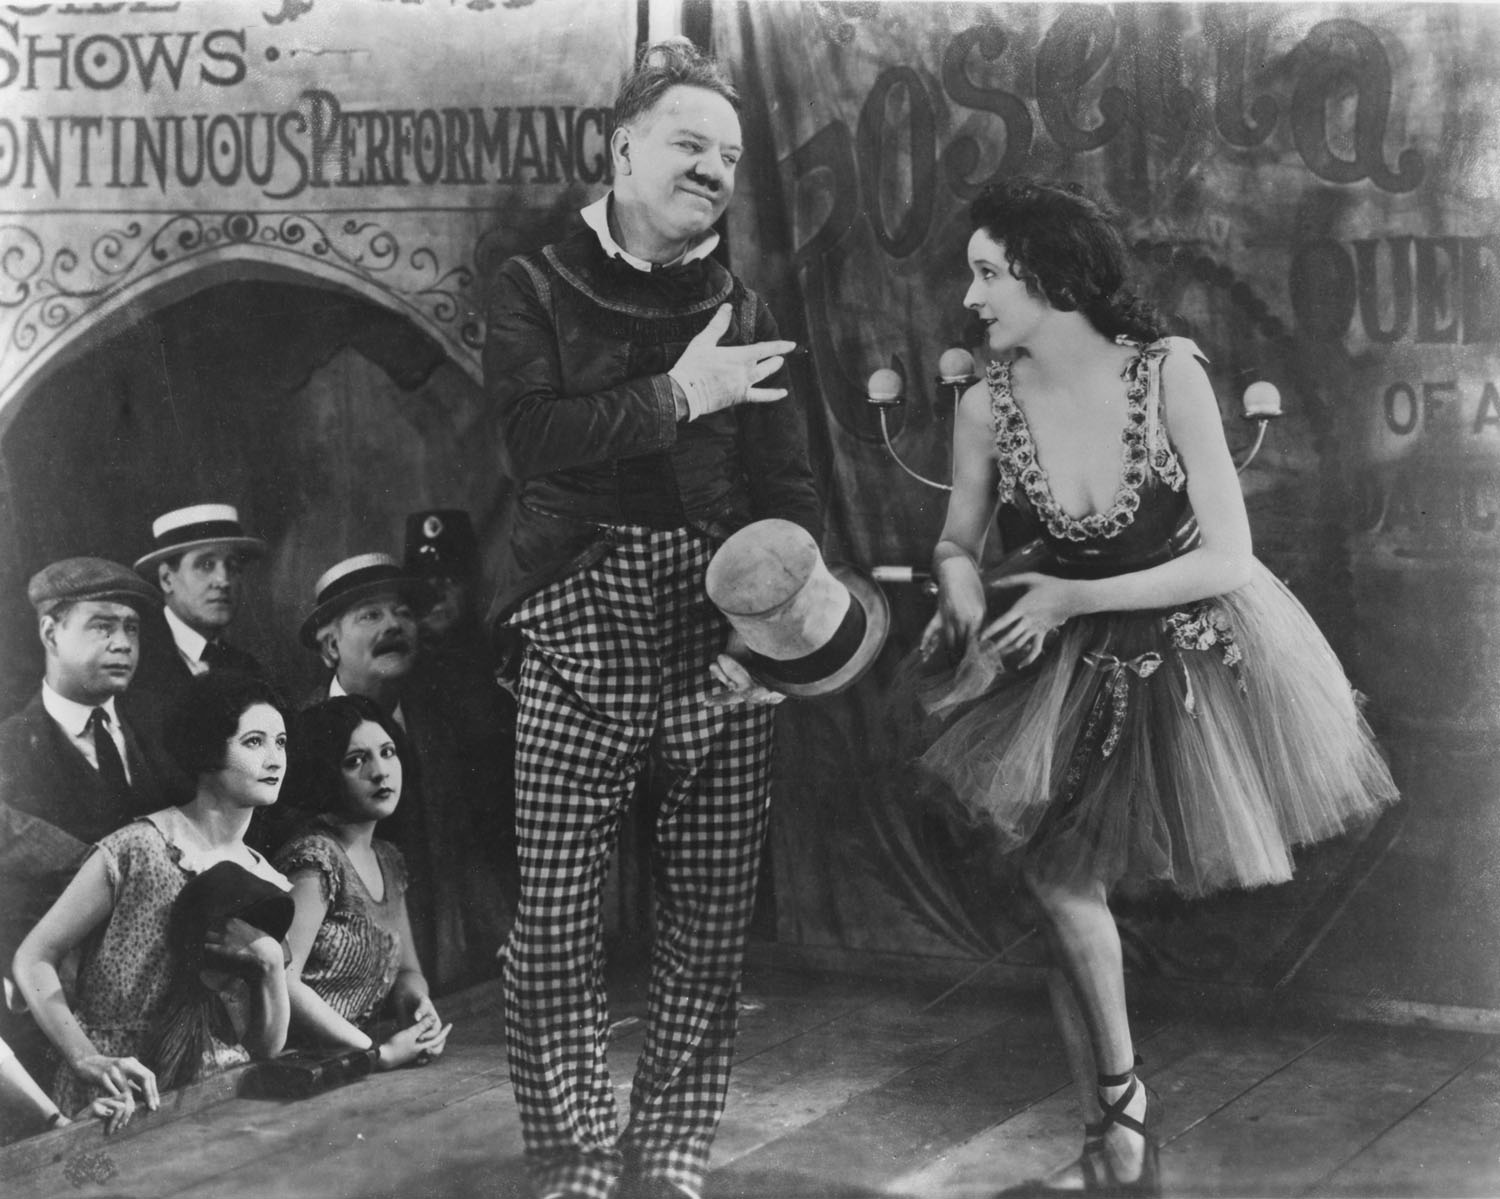 W.C. Fields, Carol Dempster in Sally of the Sawdust